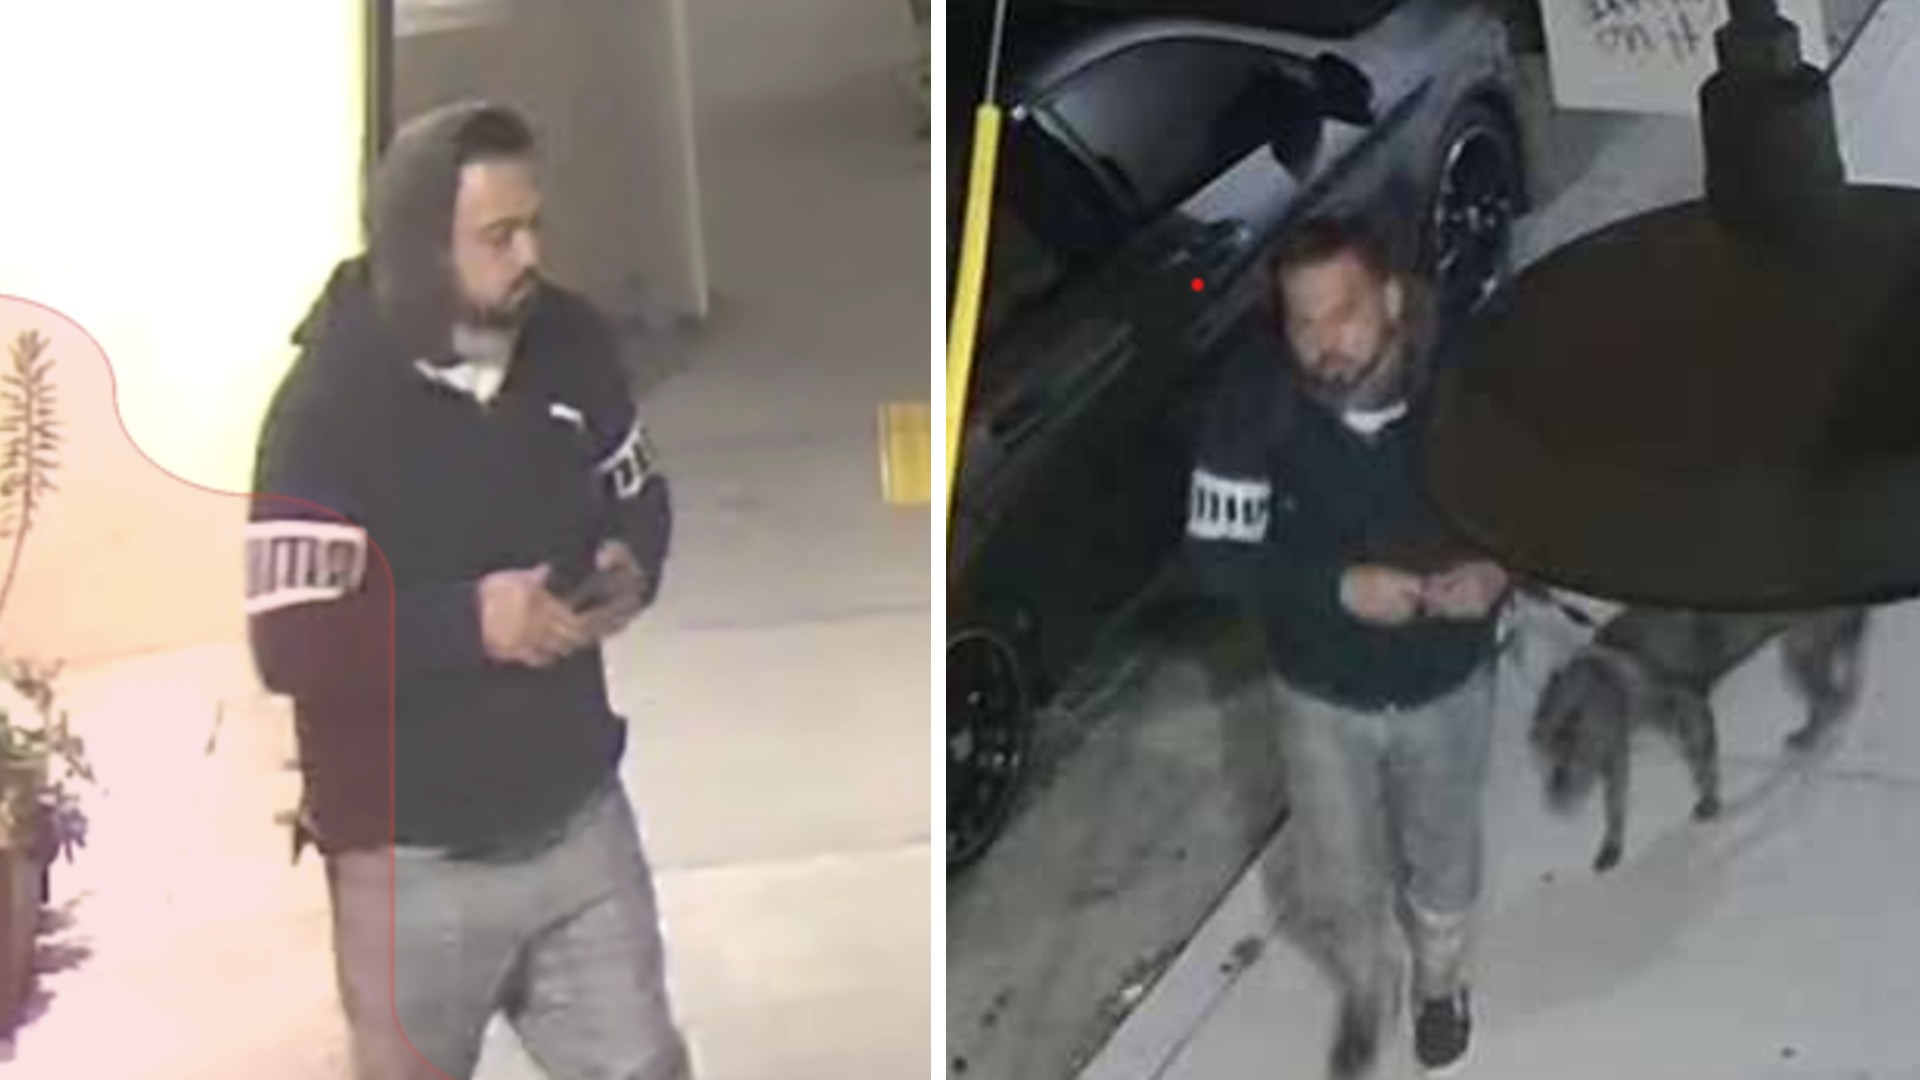 Authorities released stills from surveillance video in hopes of identifying a man caught on video vandalizing several businesses in Port Hueneme on May 21, 2021.